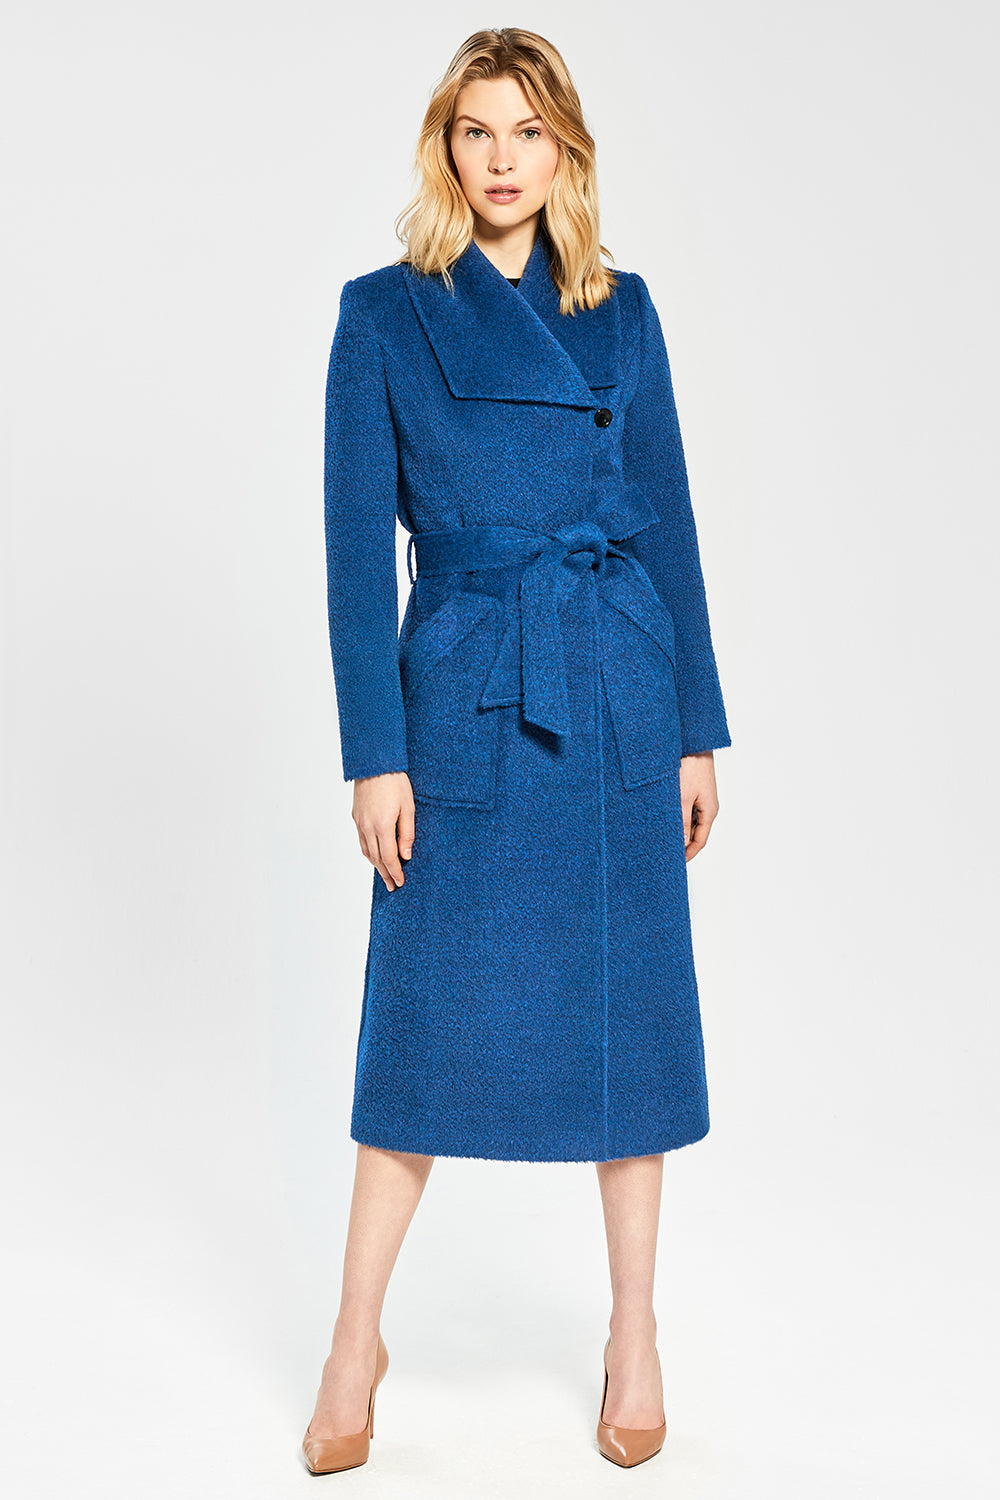 Sentaler Bouclé Alpaca Long Wide Collar Wrap Coat featured in Bouclé Alpaca and available in Classic Blue. Seen from front.